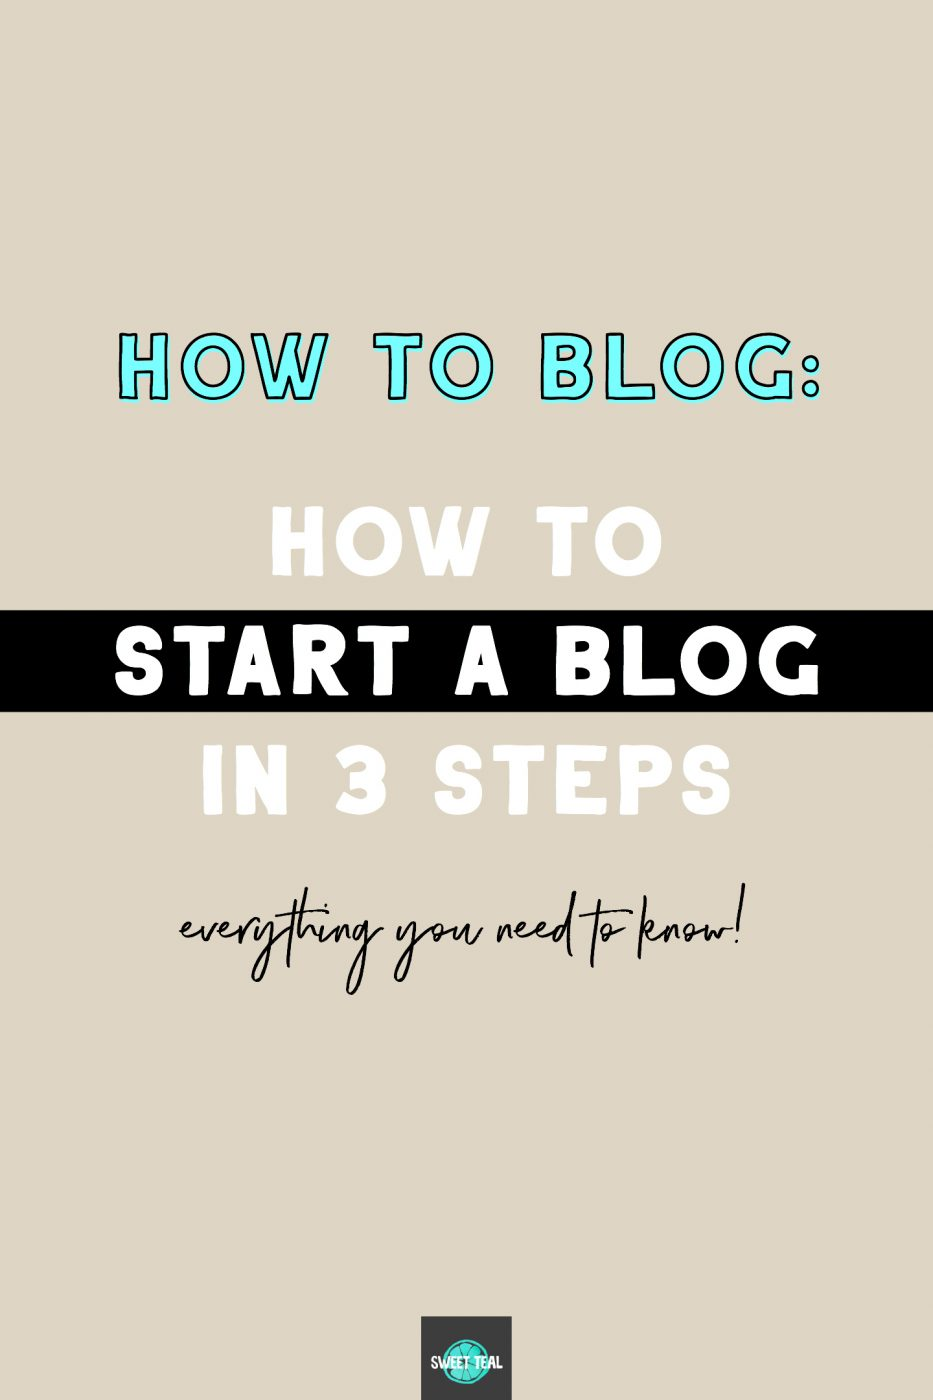 How to start a blog in 3 steps - Sweet Teal